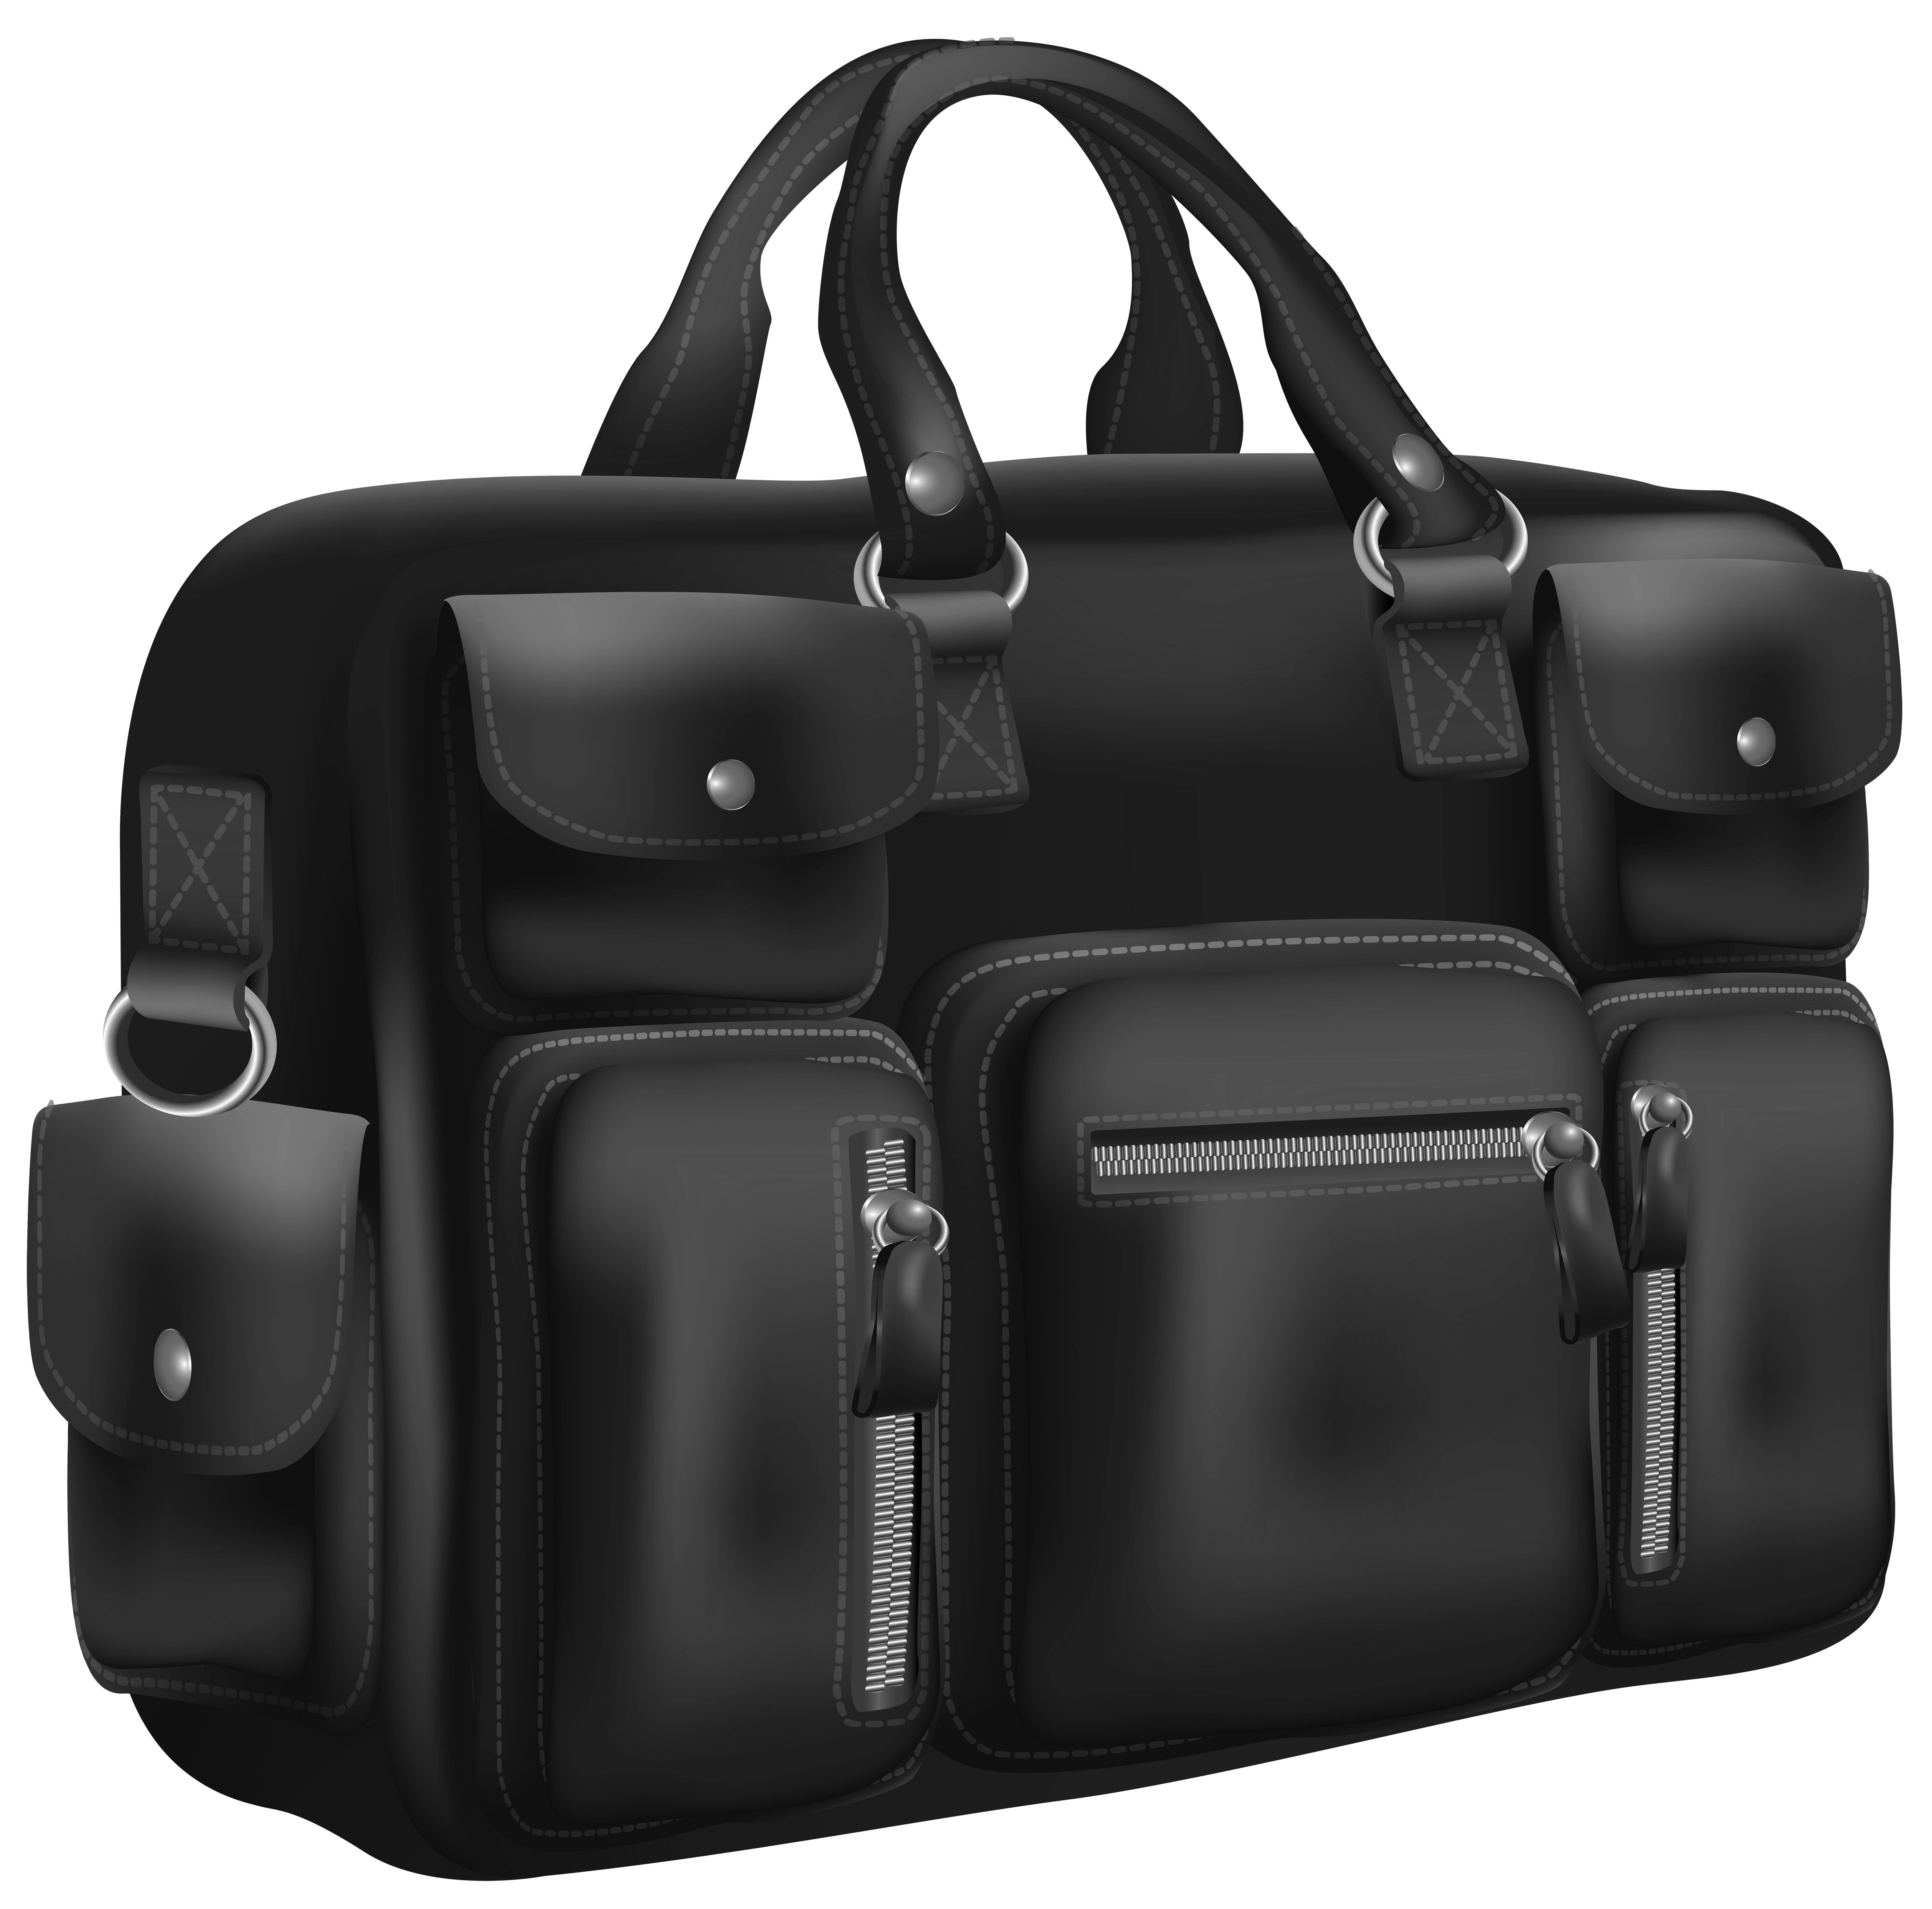 Bag png clip art. Luggage clipart lugagge